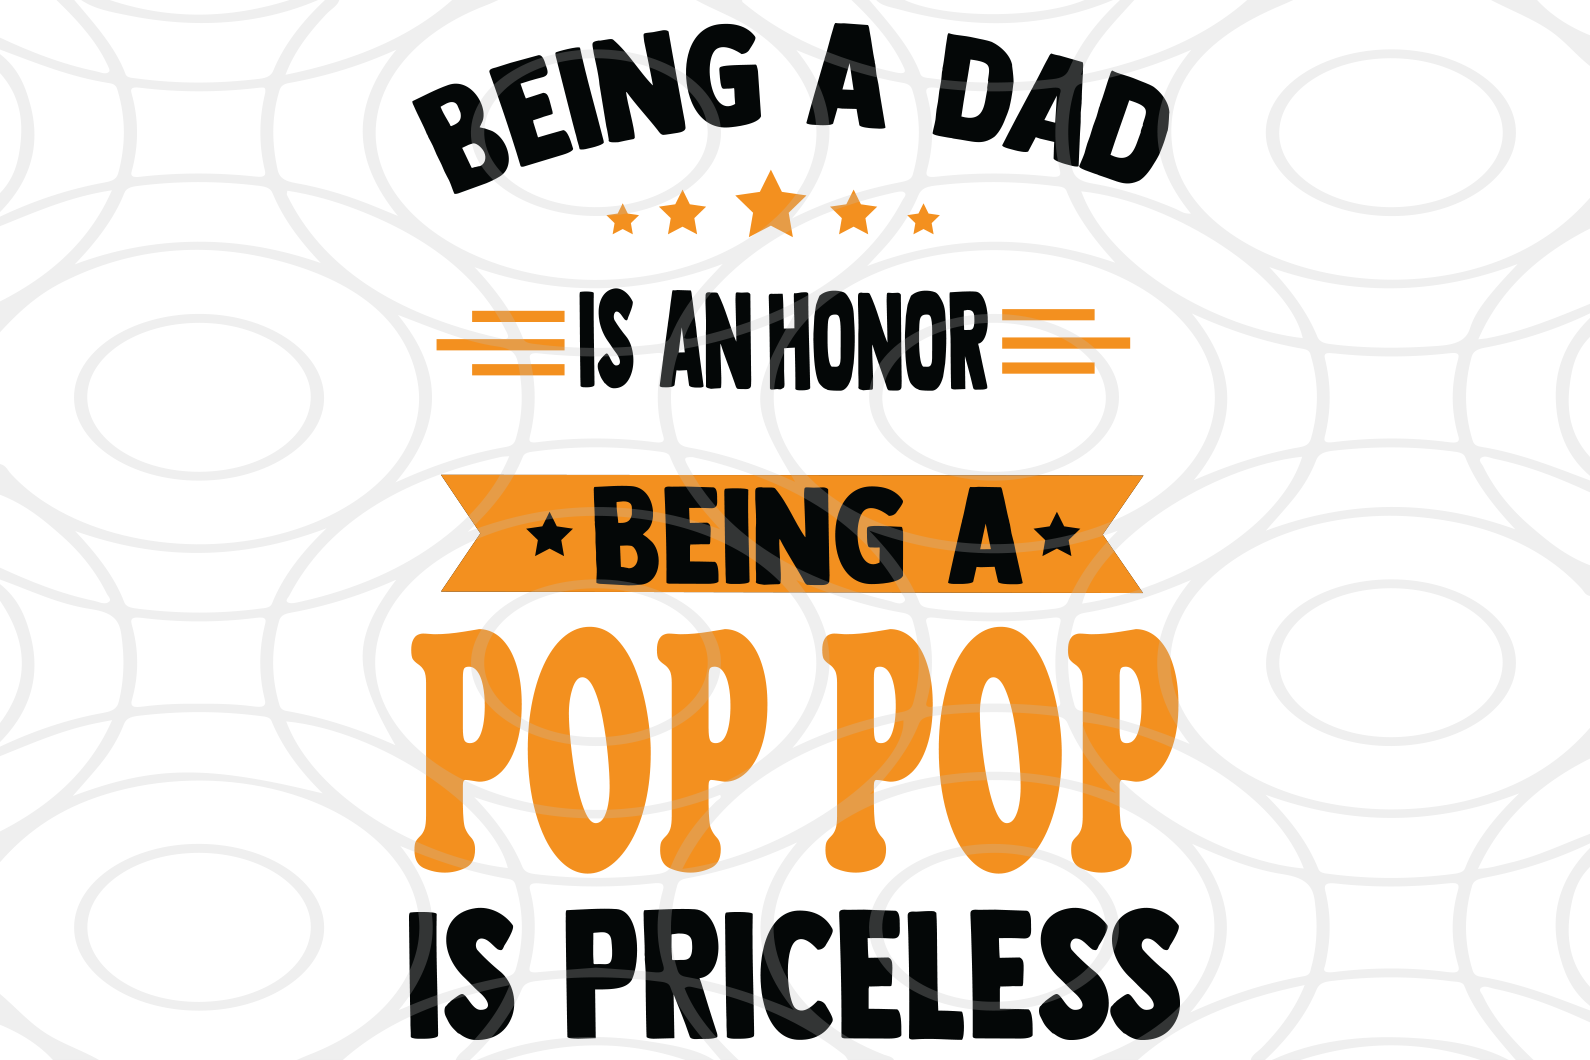 Being a dad is an honor being a pop pop is priceless, papa svg, baba svg,father's day svg, father svg, dad svg, daddy svg, poppop svg Files For Silhouette, Files For Cricut, SVG, DXF, EPS, PNG, Instant Download